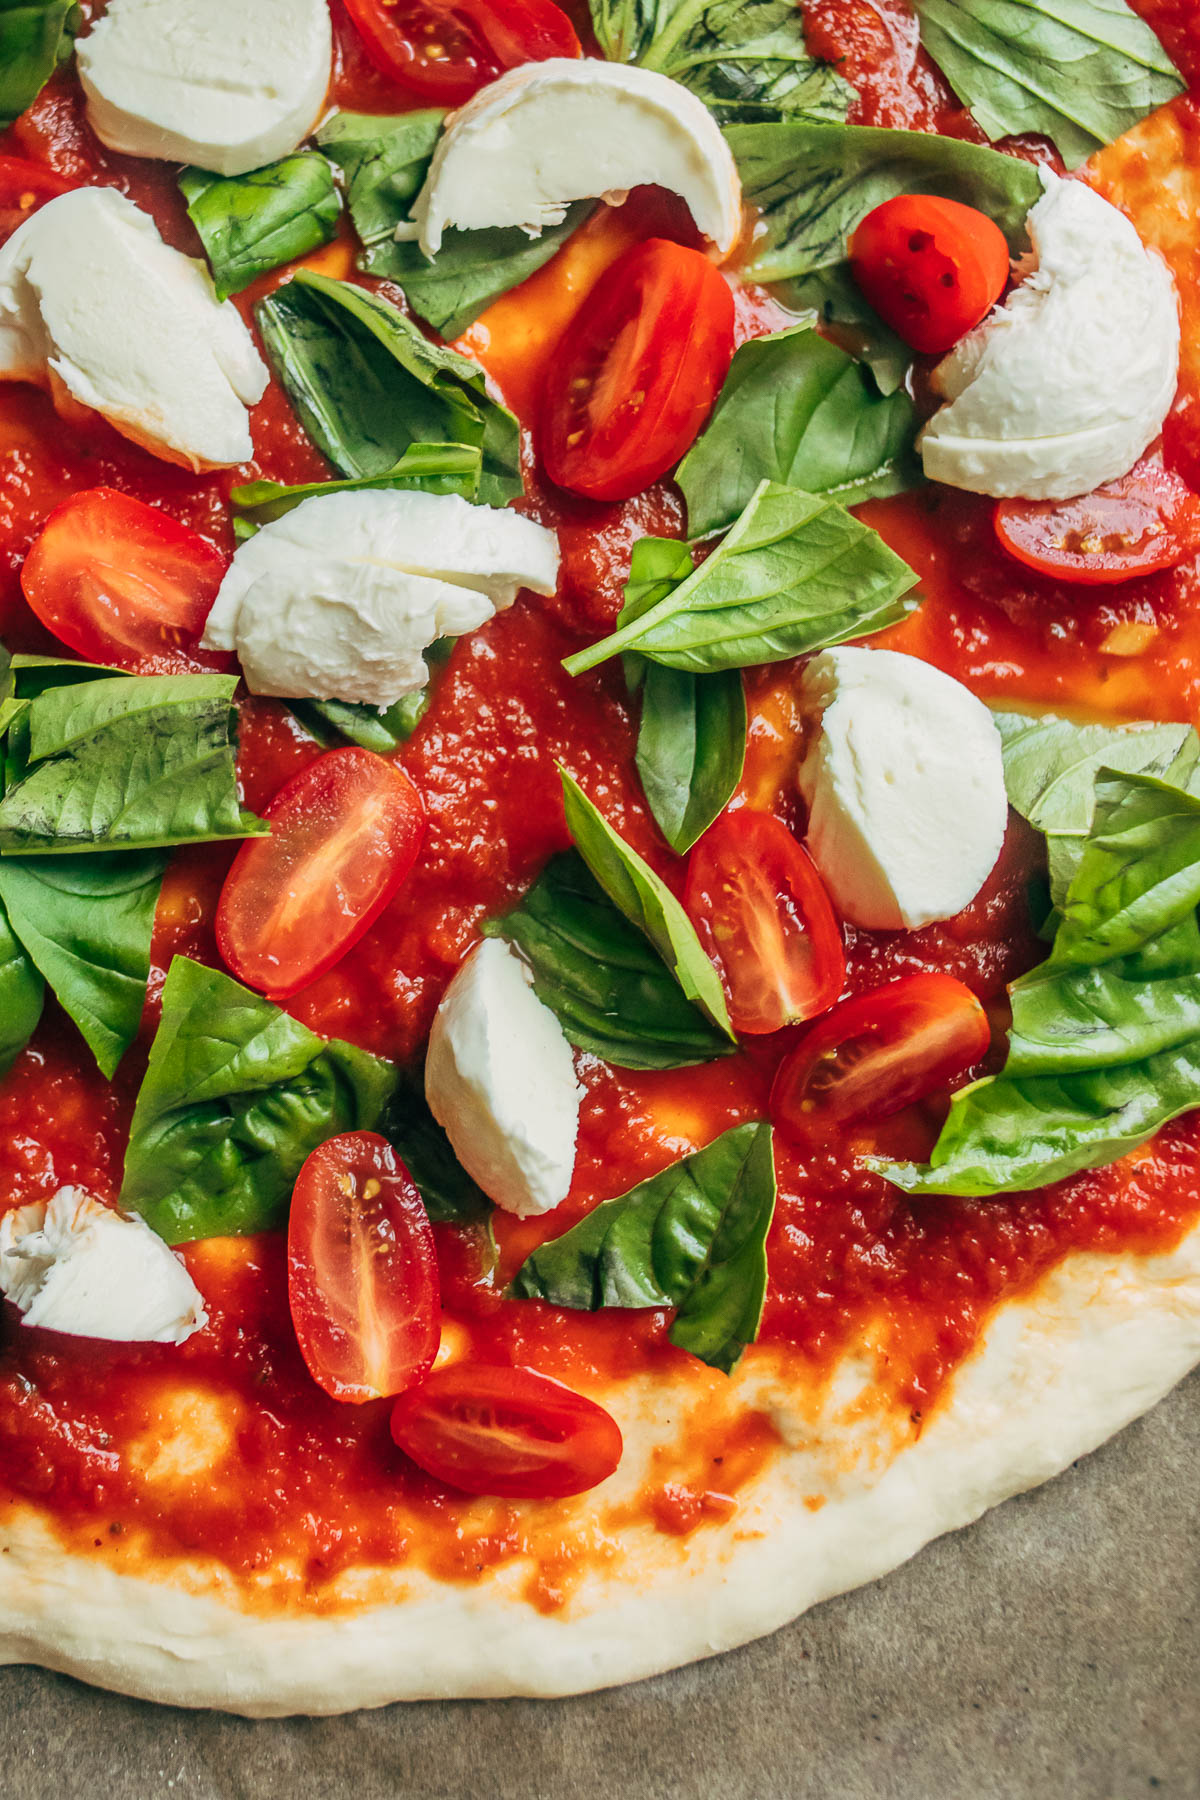 Uncooked pizza topped with tomato sauce, tomatoes, bocconcini, and fresh basil.